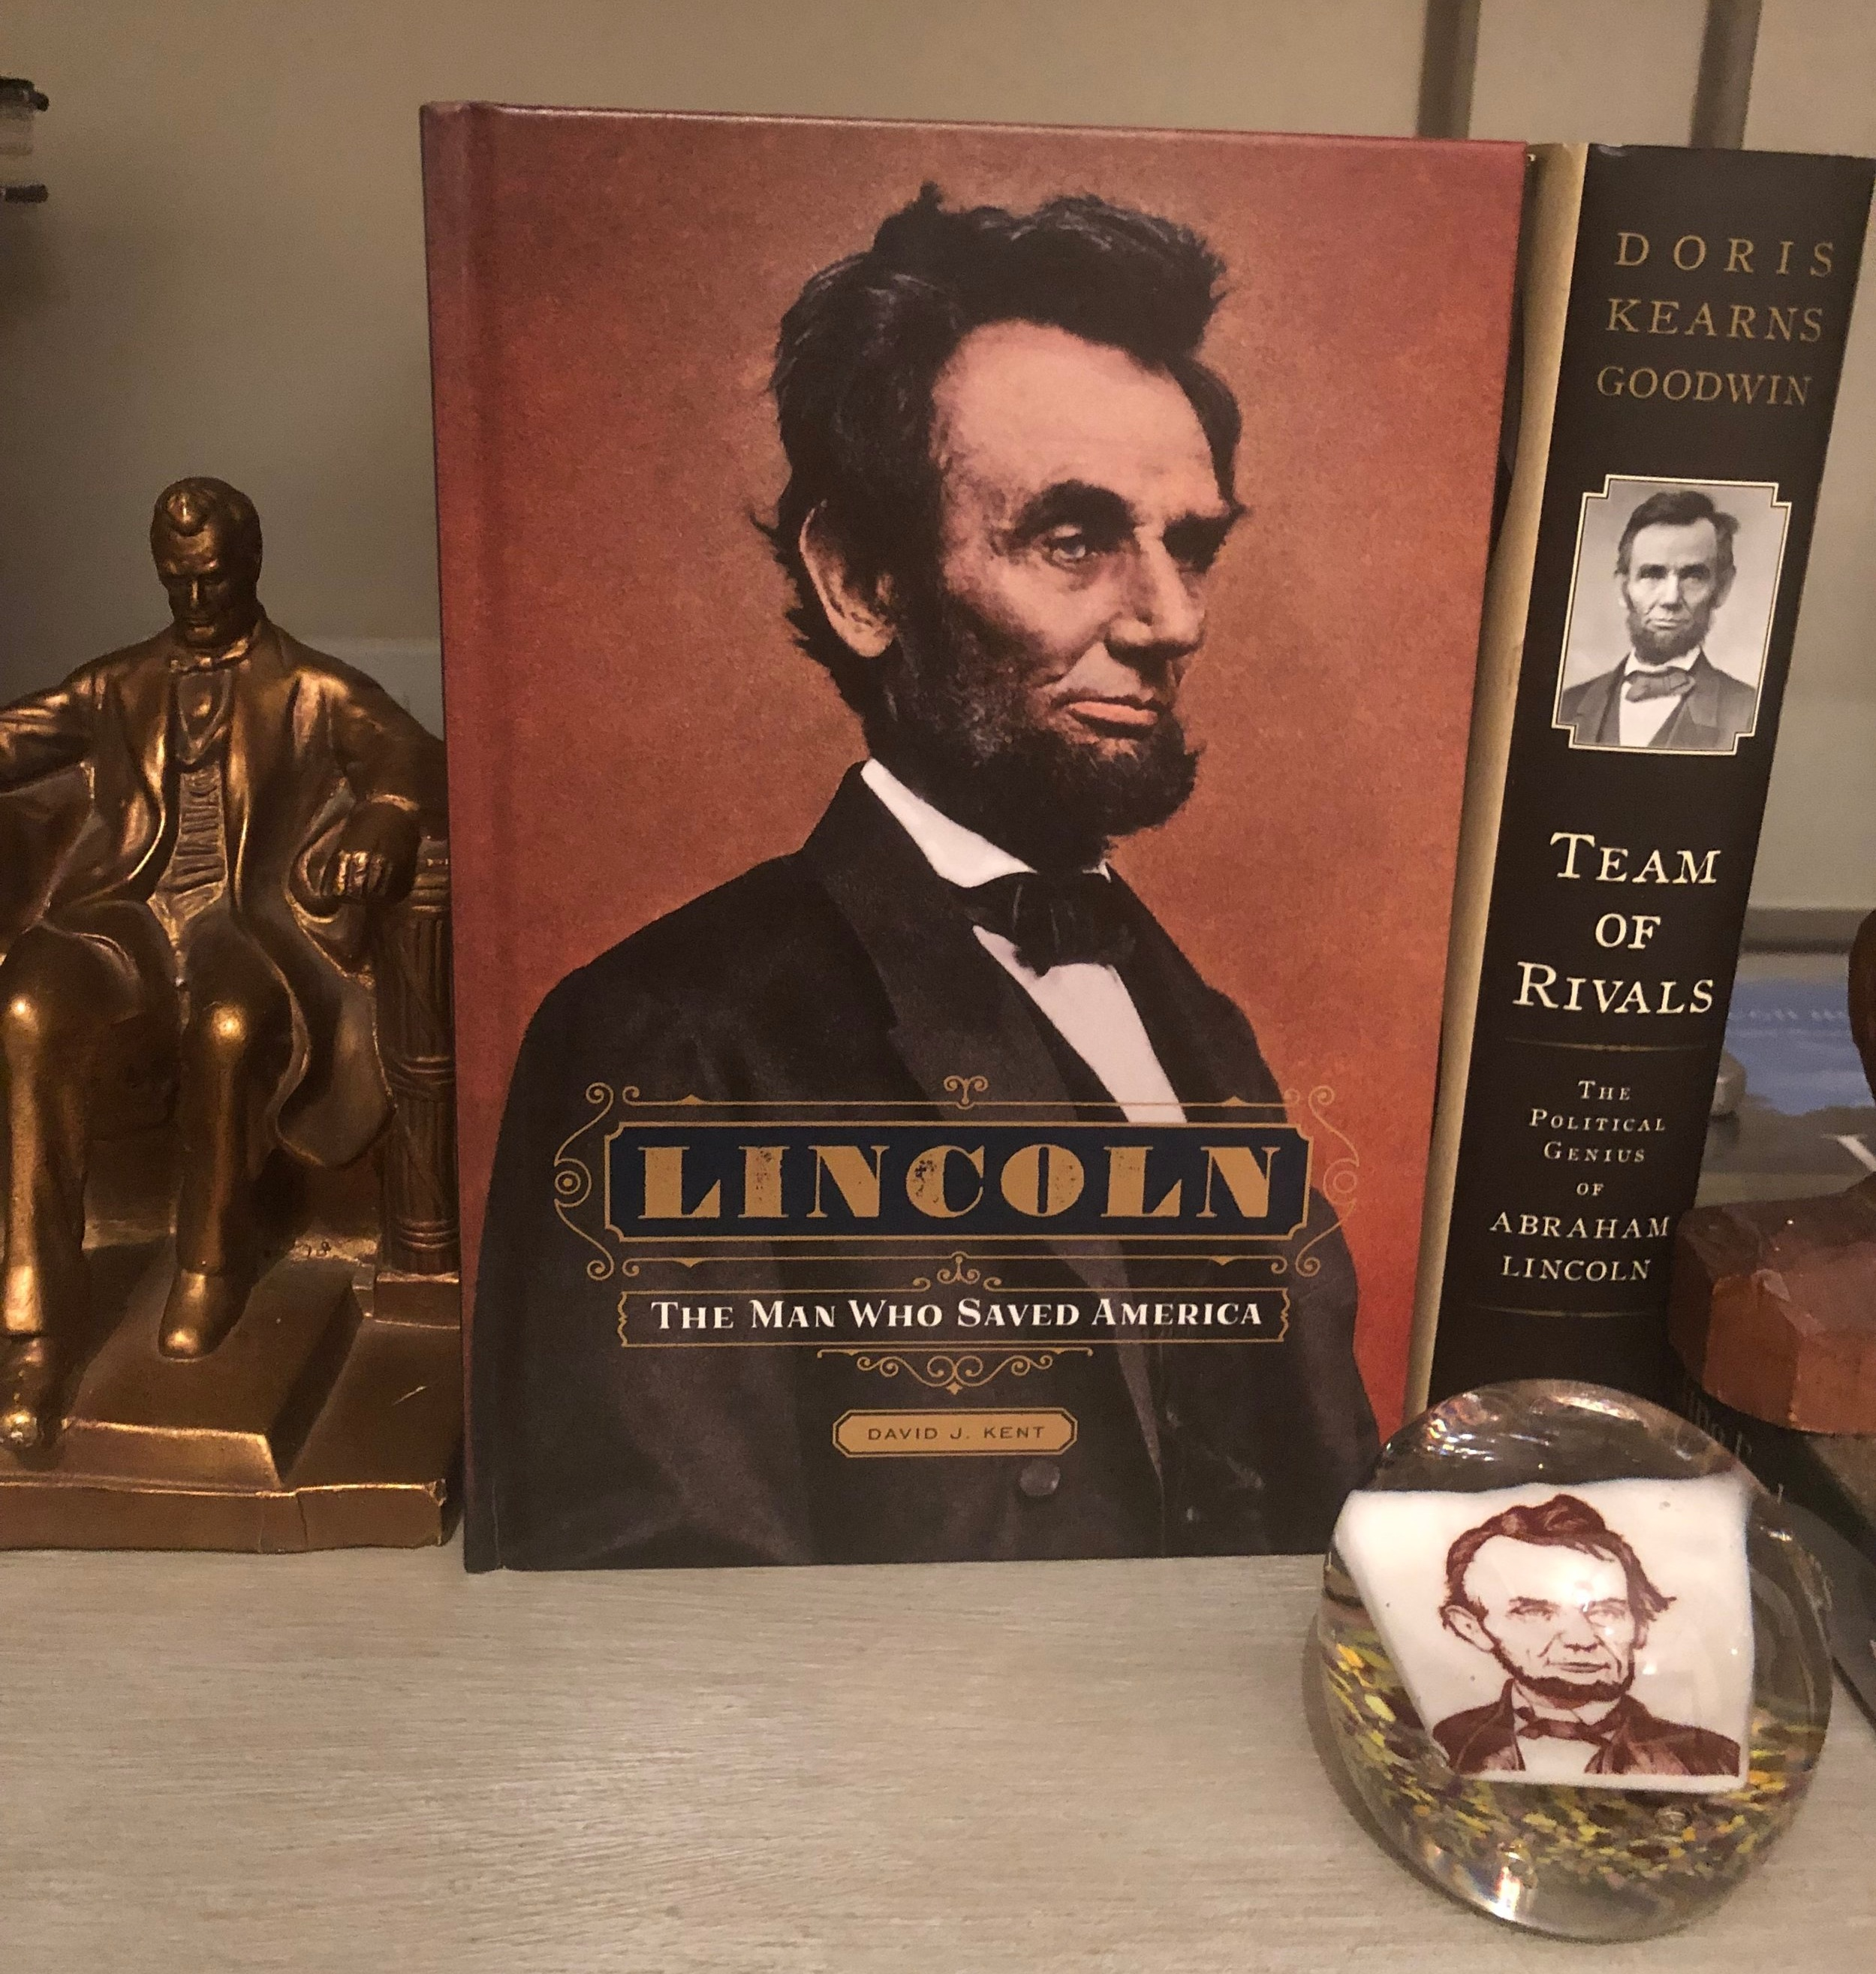 A picture of Abe on the cover of a book is all it takes to make a statement.